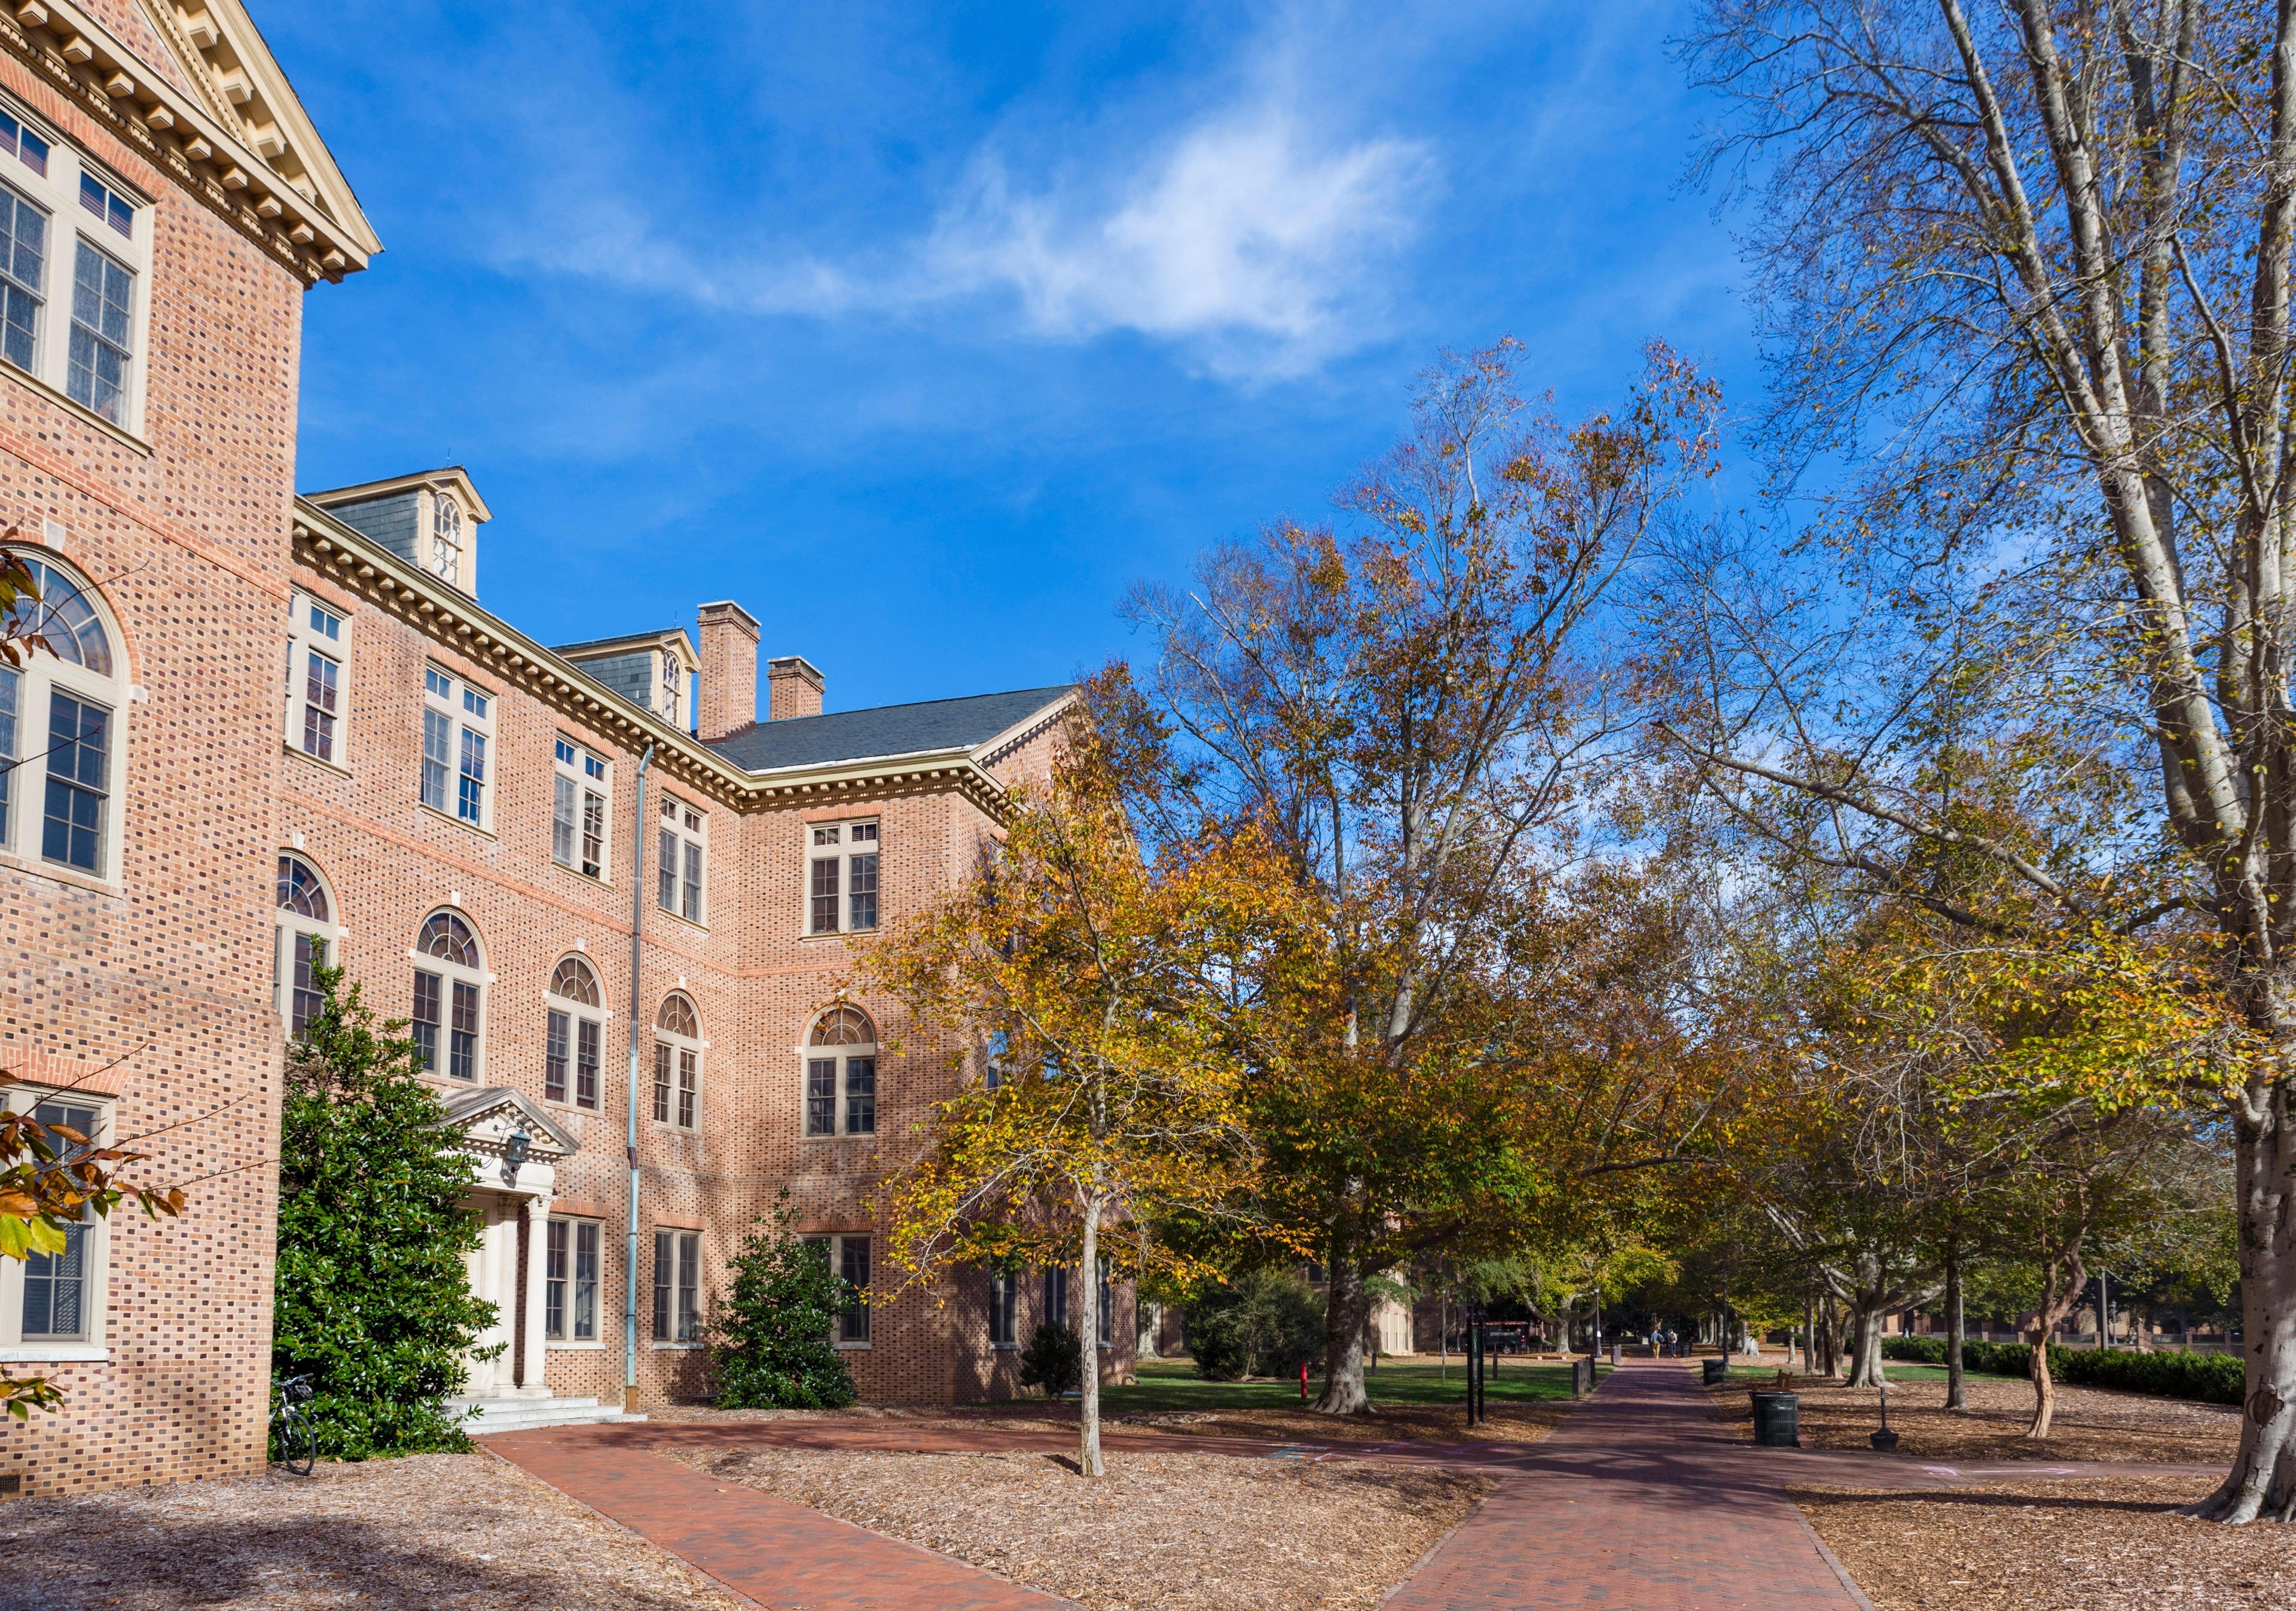 Explore the campus of College of William and Mary, during your trip to Williamsburg. Amble around the area's picturesque gardens or attend a sporting event.